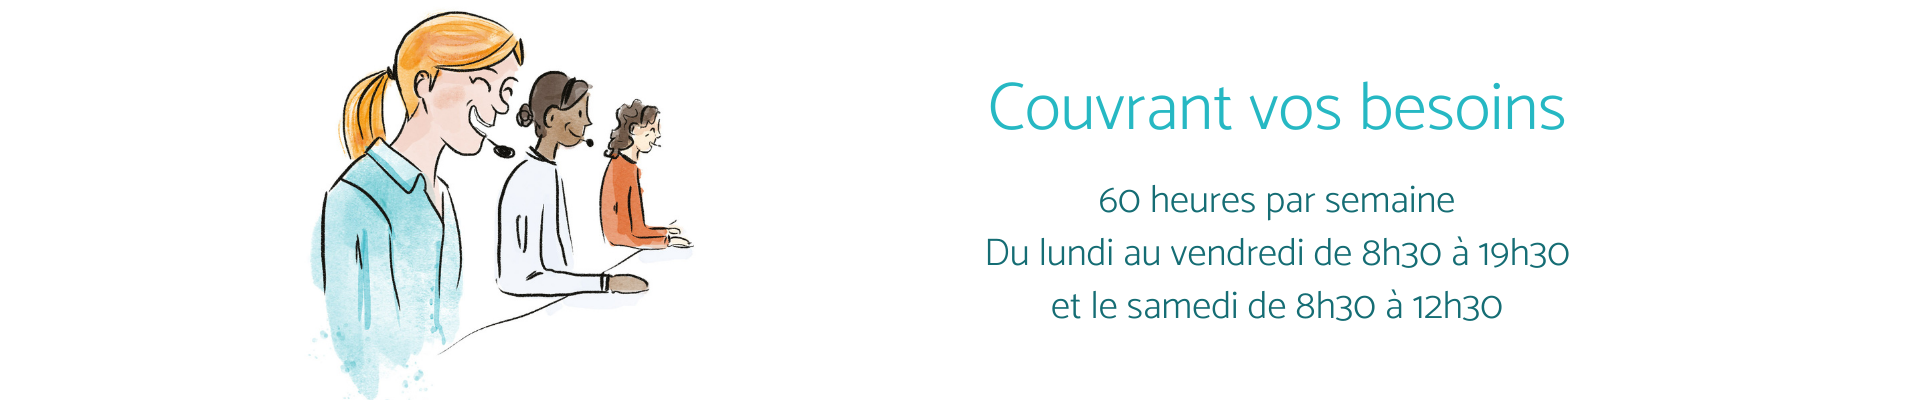 Couvrant vos besoins